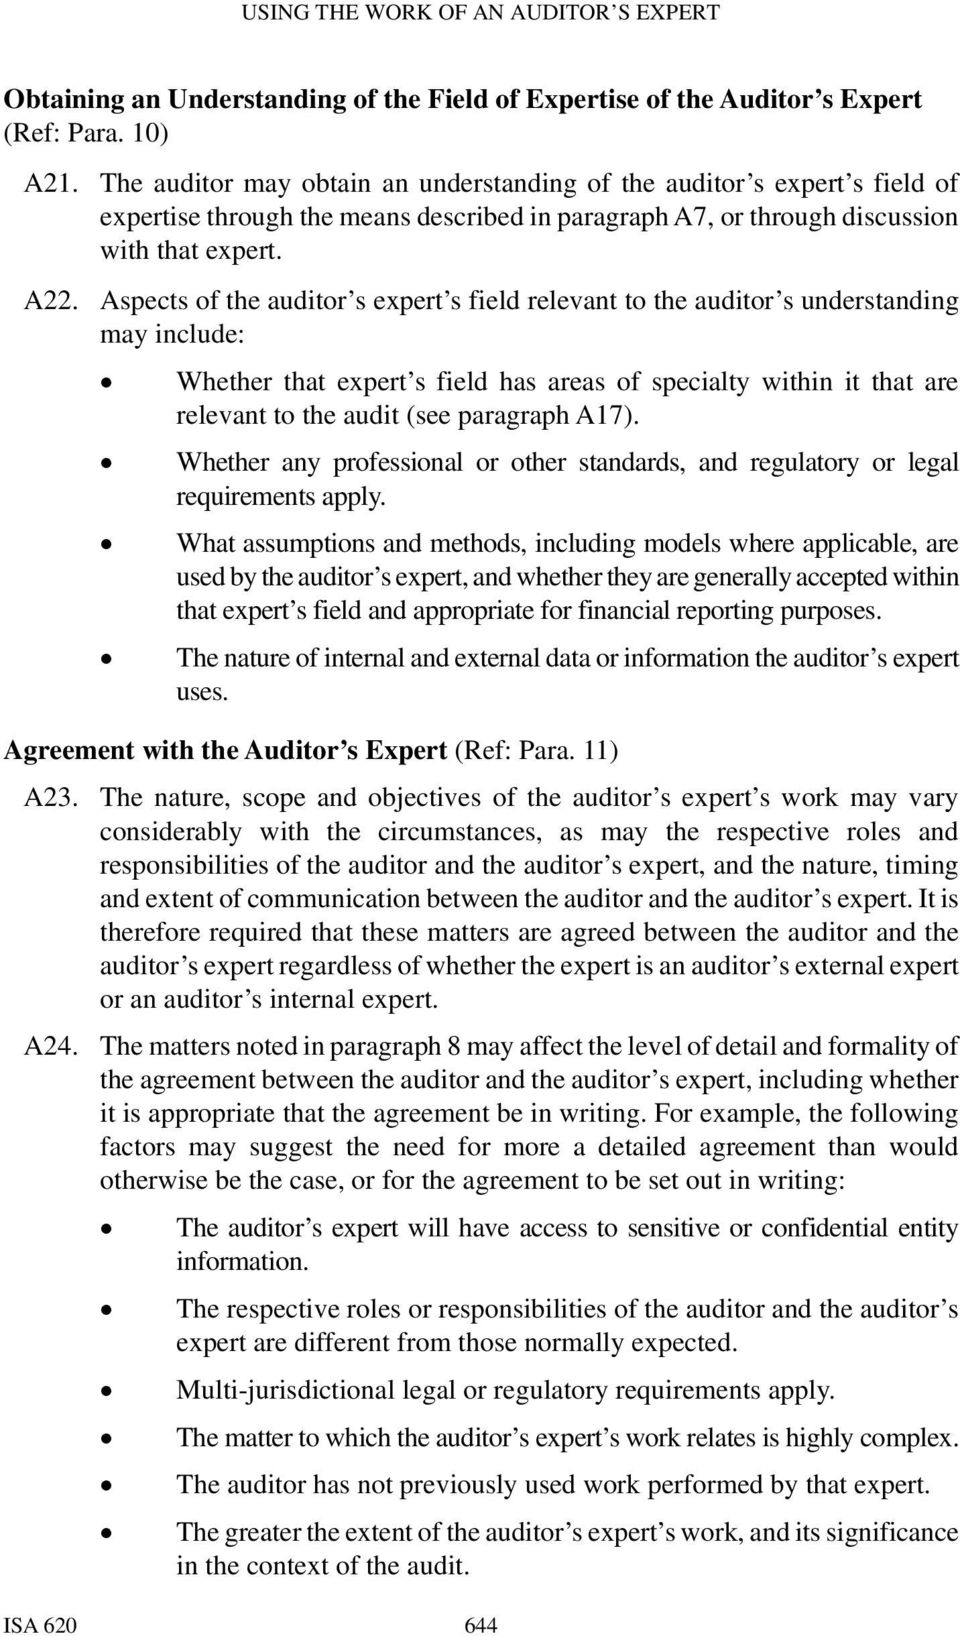 Aspects of the auditor s expert s field relevant to the auditor s understanding may include: Whether that expert s field has areas of specialty within it that are relevant to the audit (see paragraph